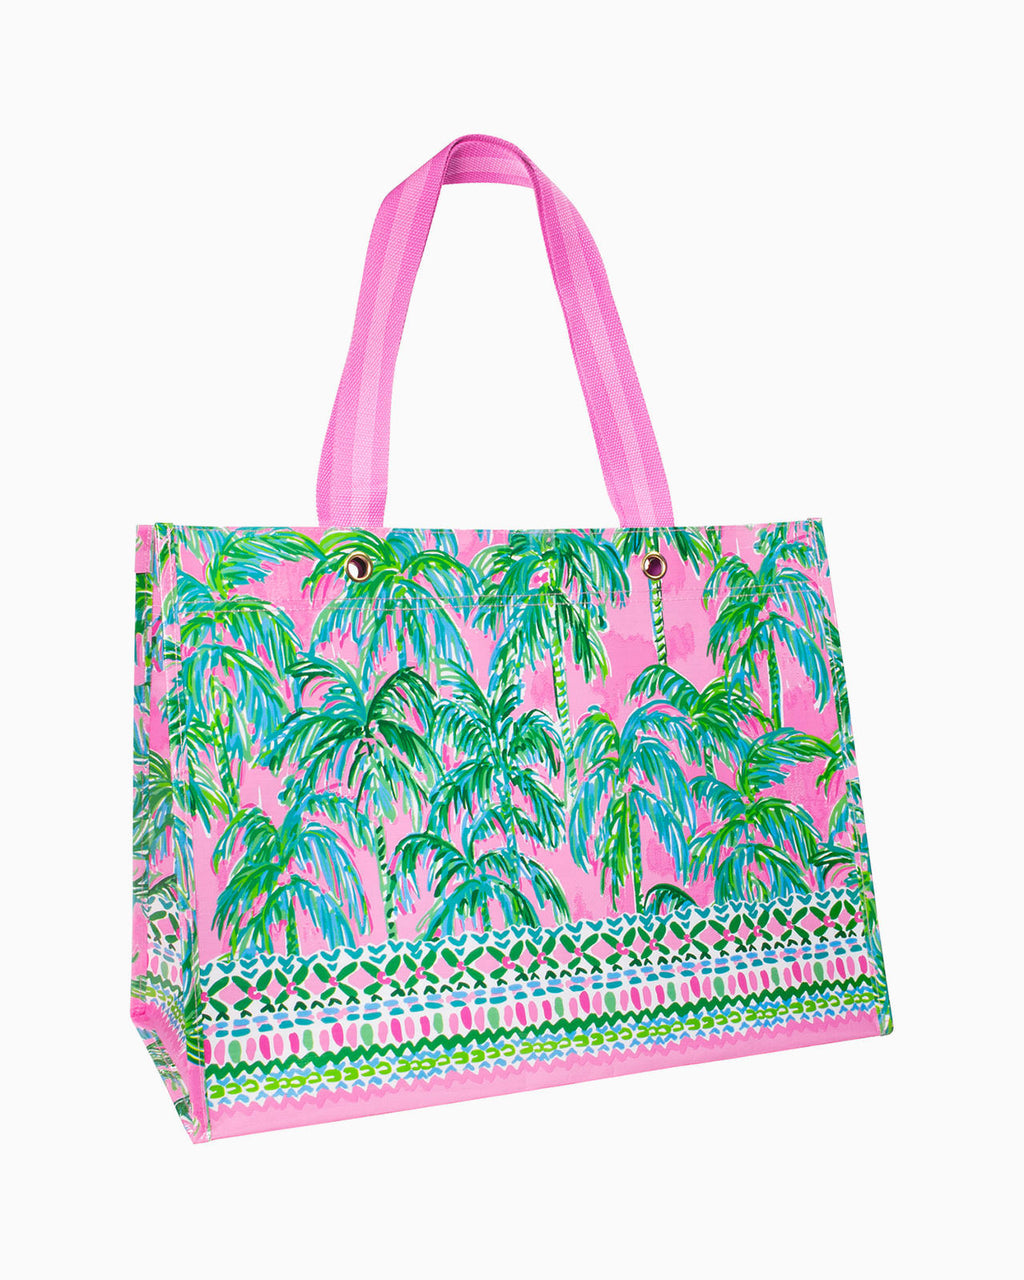 Lilly Pulitzer Market Carry All, Suite Views - Monogram Market